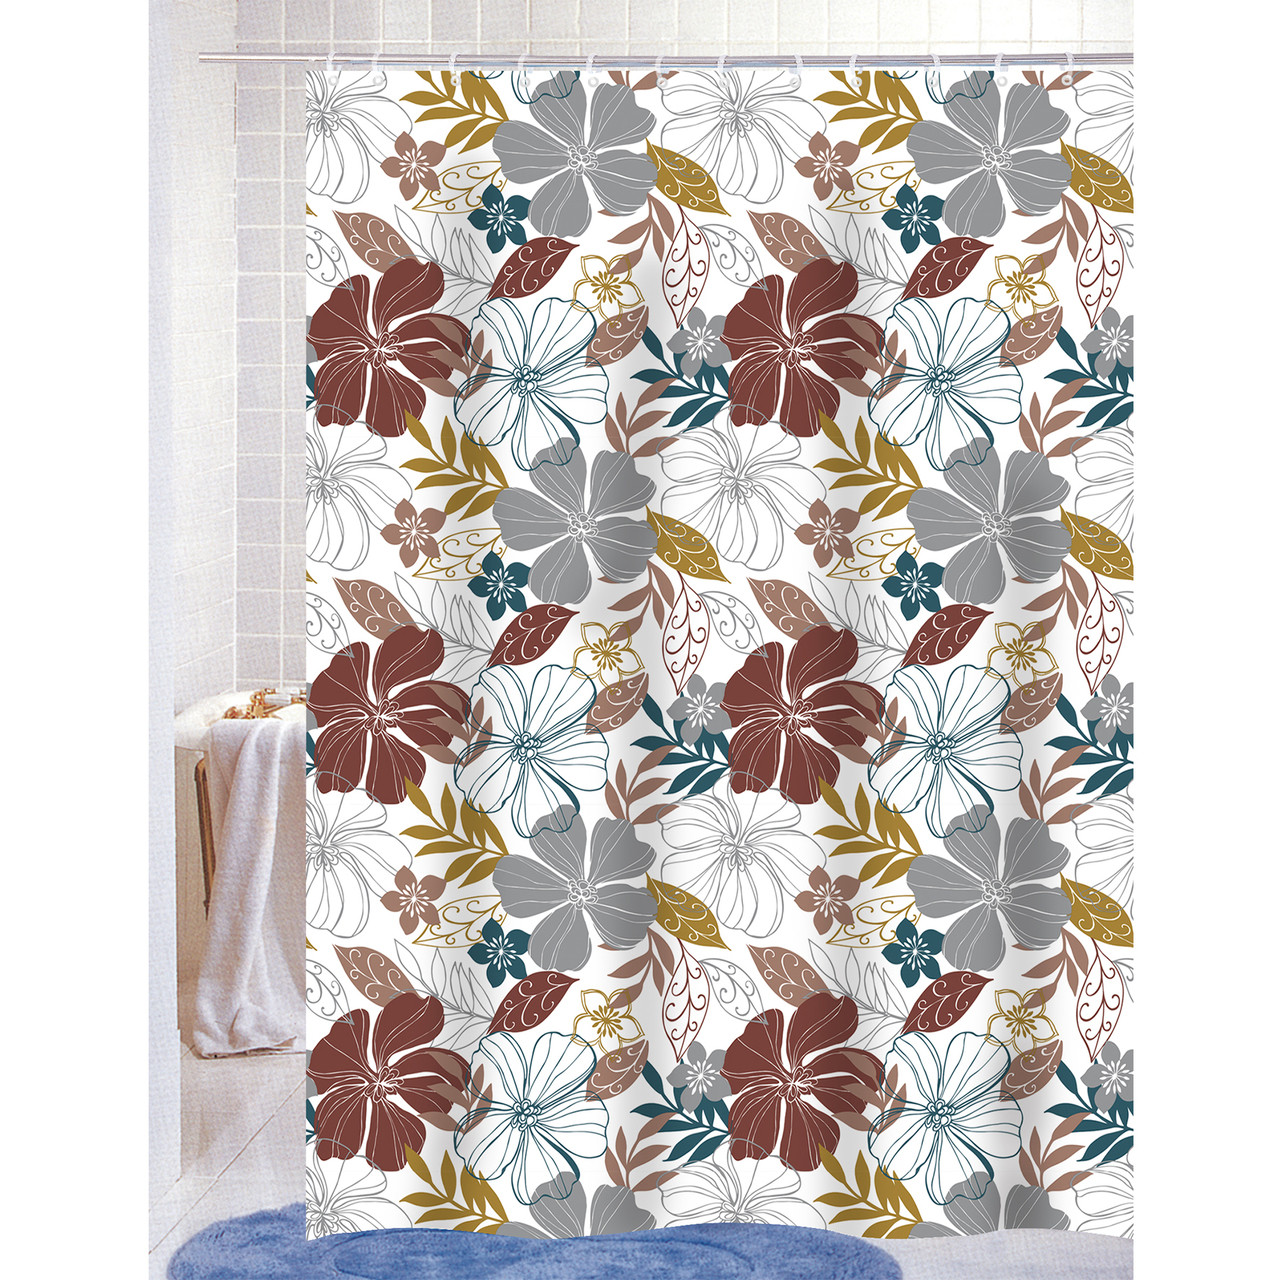 Shower Curtains For Less A Standard Shower Curtain Size Guide Linen Store